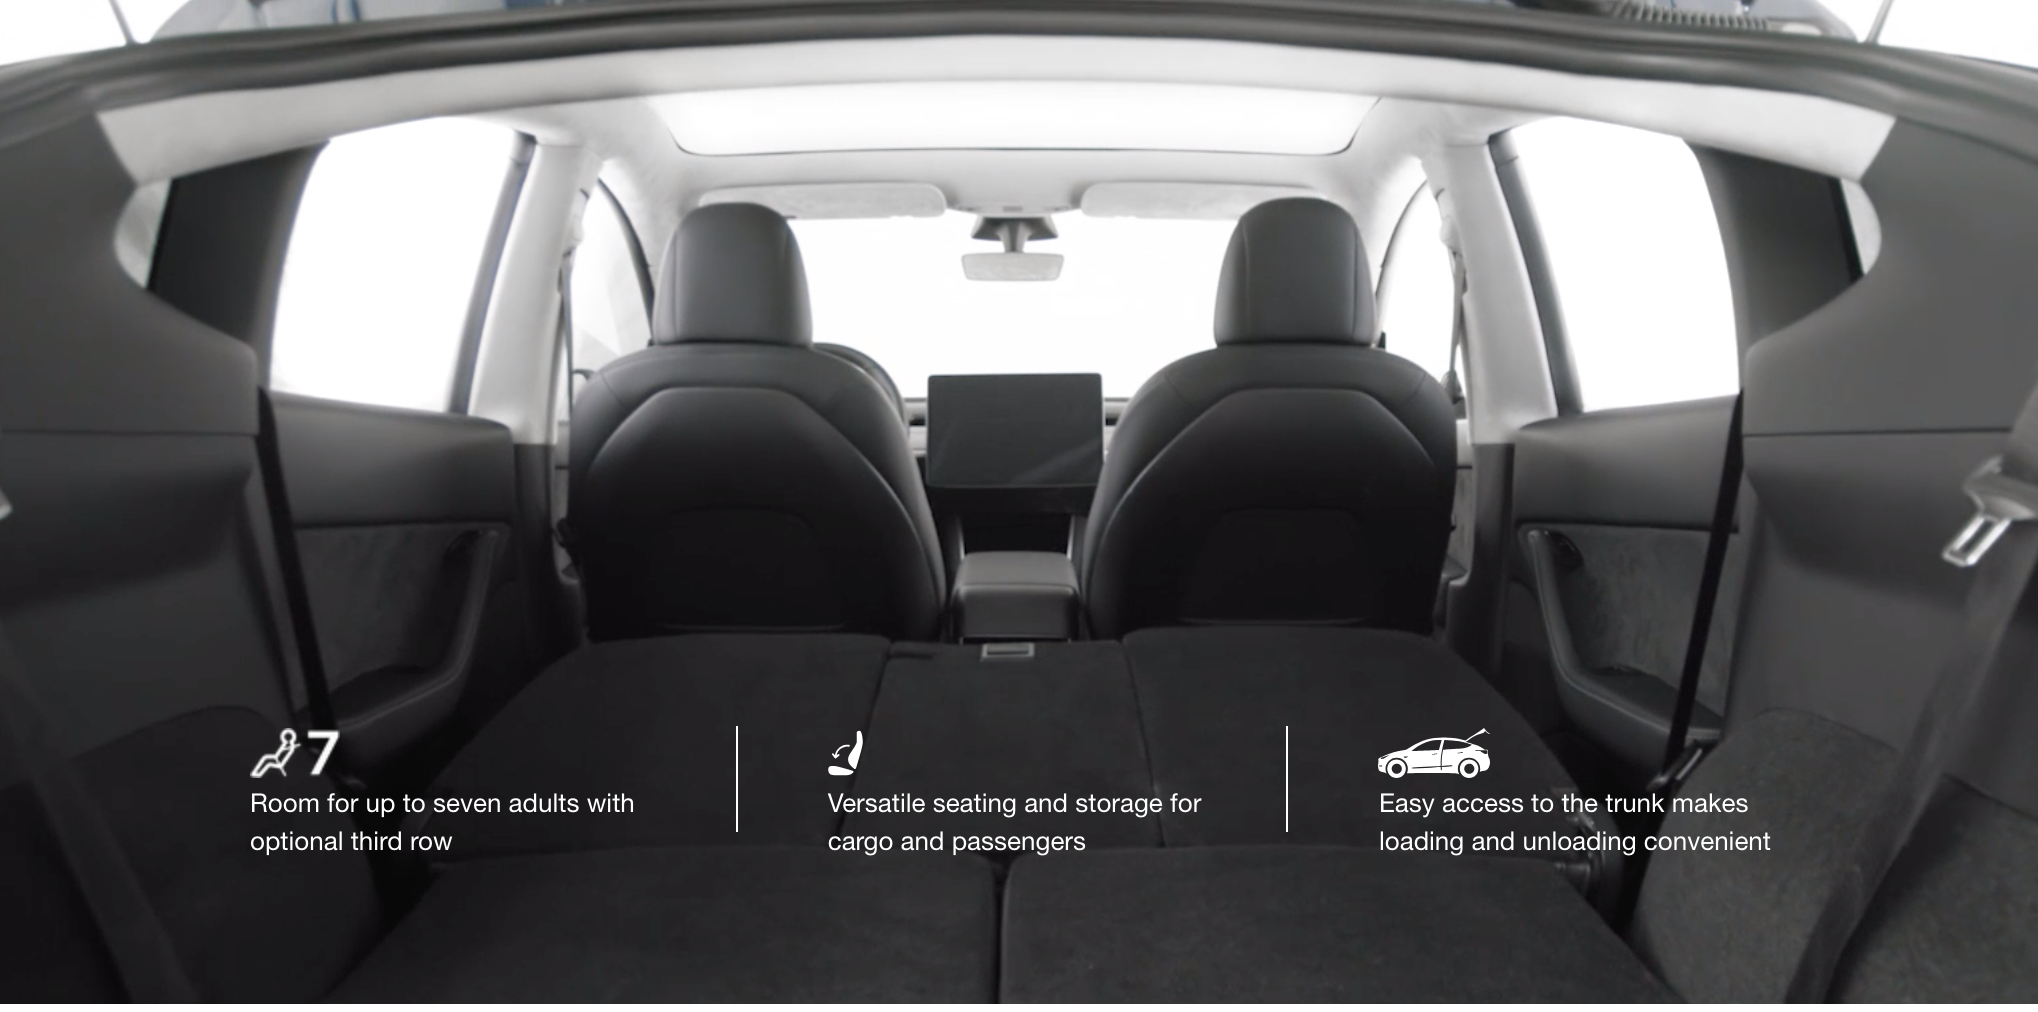 Seats Can Be Folded Down Flat To Maximize Its Hauling Capacity With 66 Cubic Feet Of Storage E The Model Y Packs A Significant Amount Utility